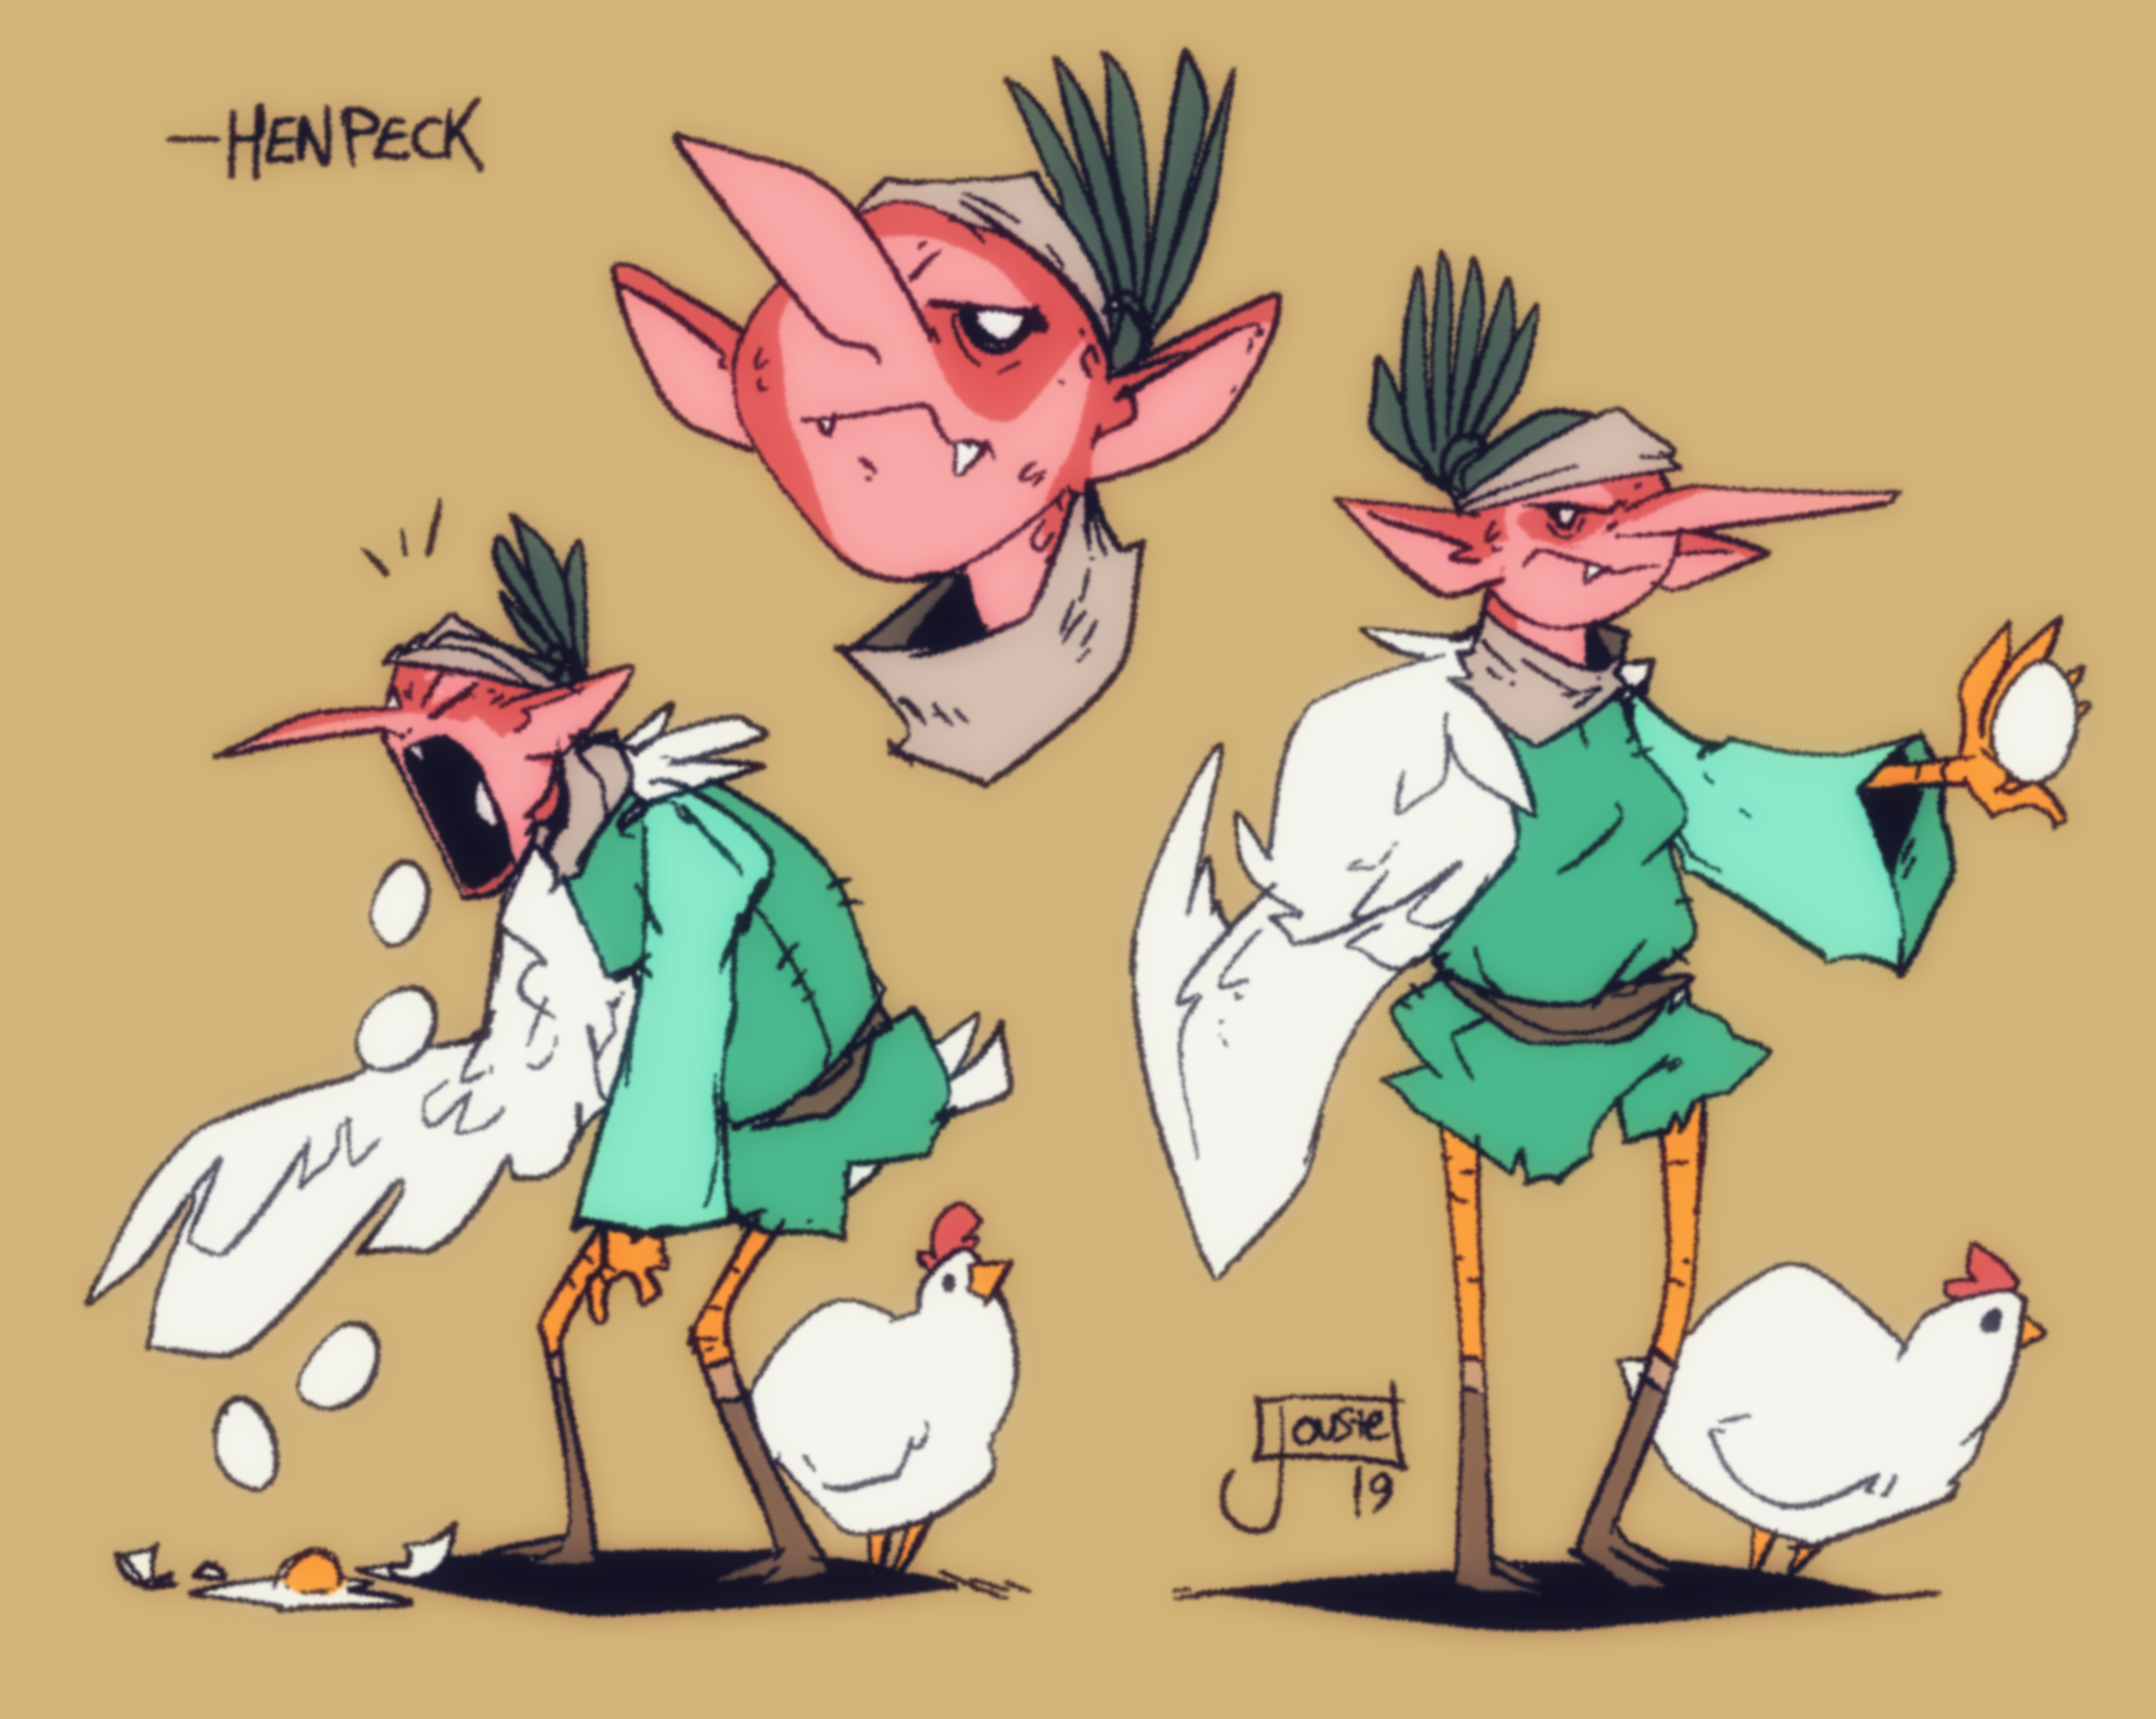 Henpeck the chicken-mage